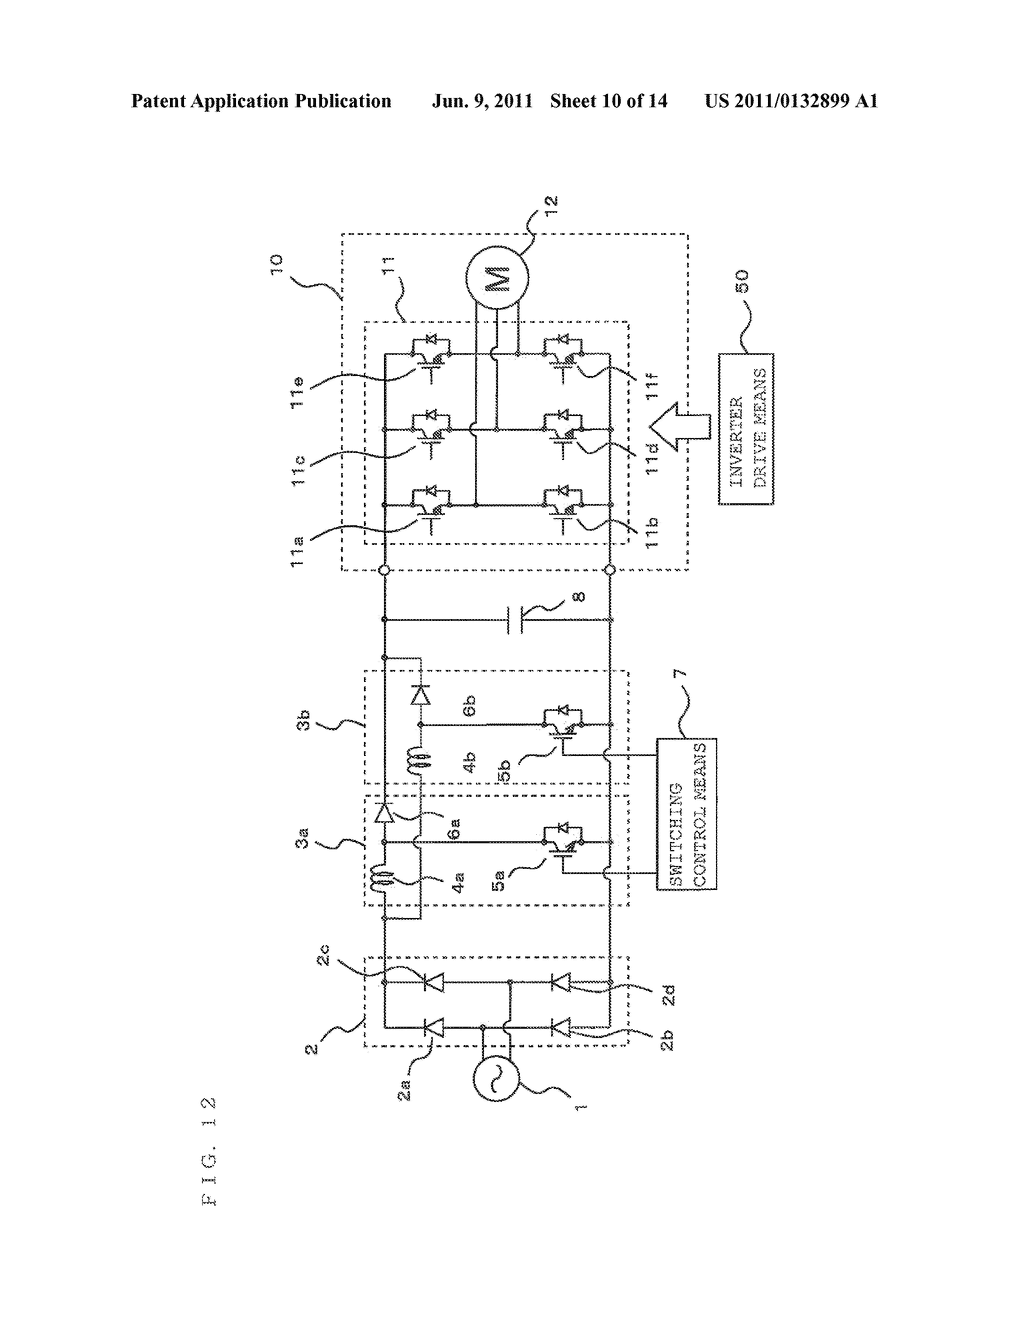 Converter Circuit And Motor Drive Apparatus Air Conditioner Ge Refrigerator Computer Wiring Diagram Induction Heating Cooker Provided With The Schematic